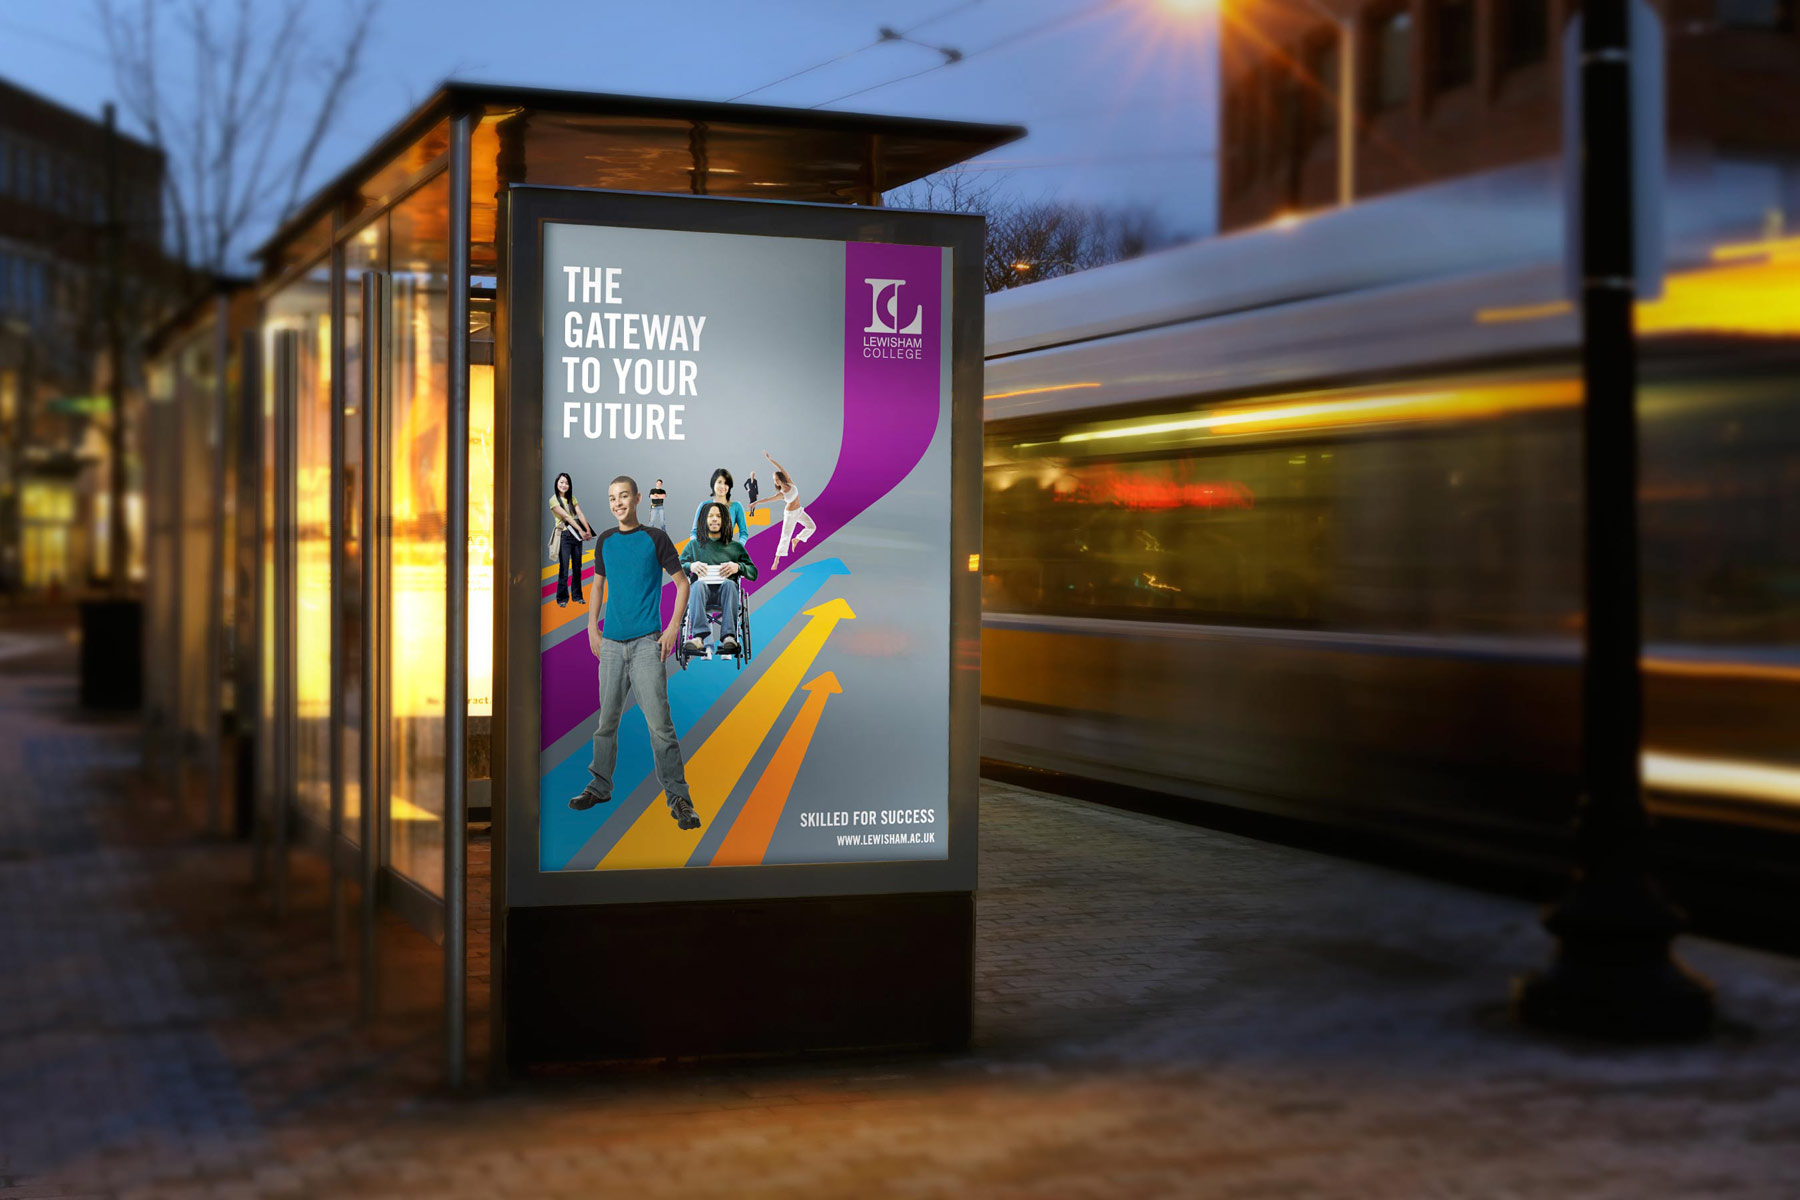 With South East London being a bit grey and urban, the identity looked to create instant standout and awareness.